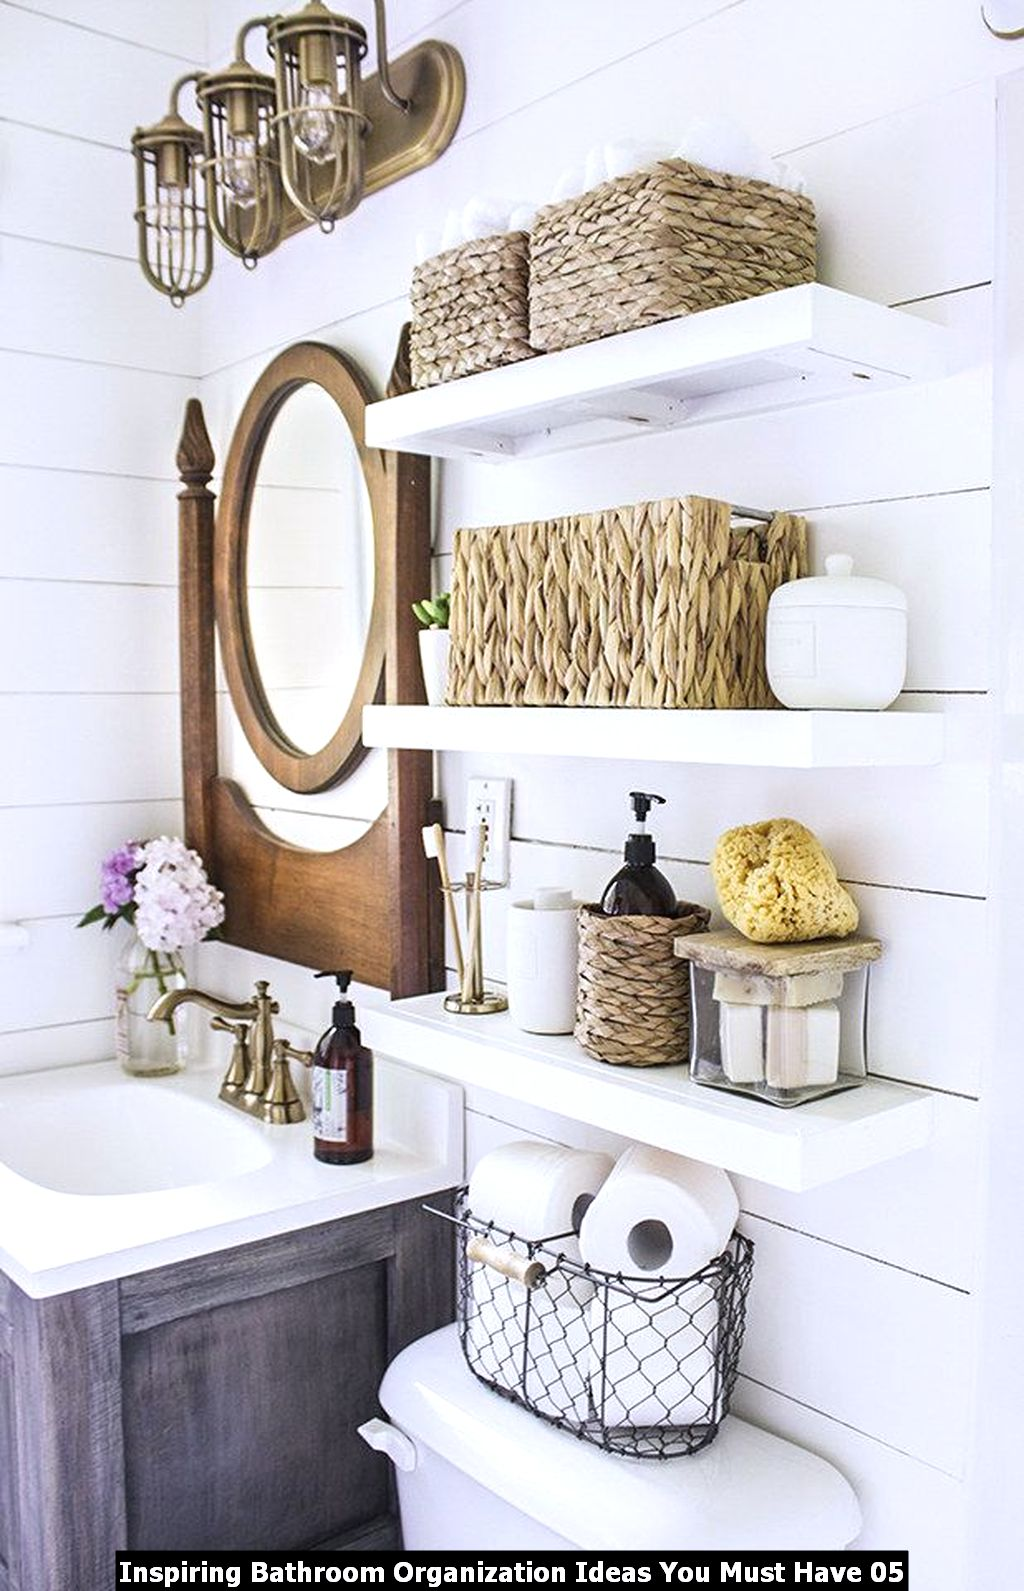 Inspiring Bathroom Organization Ideas You Must Have 05